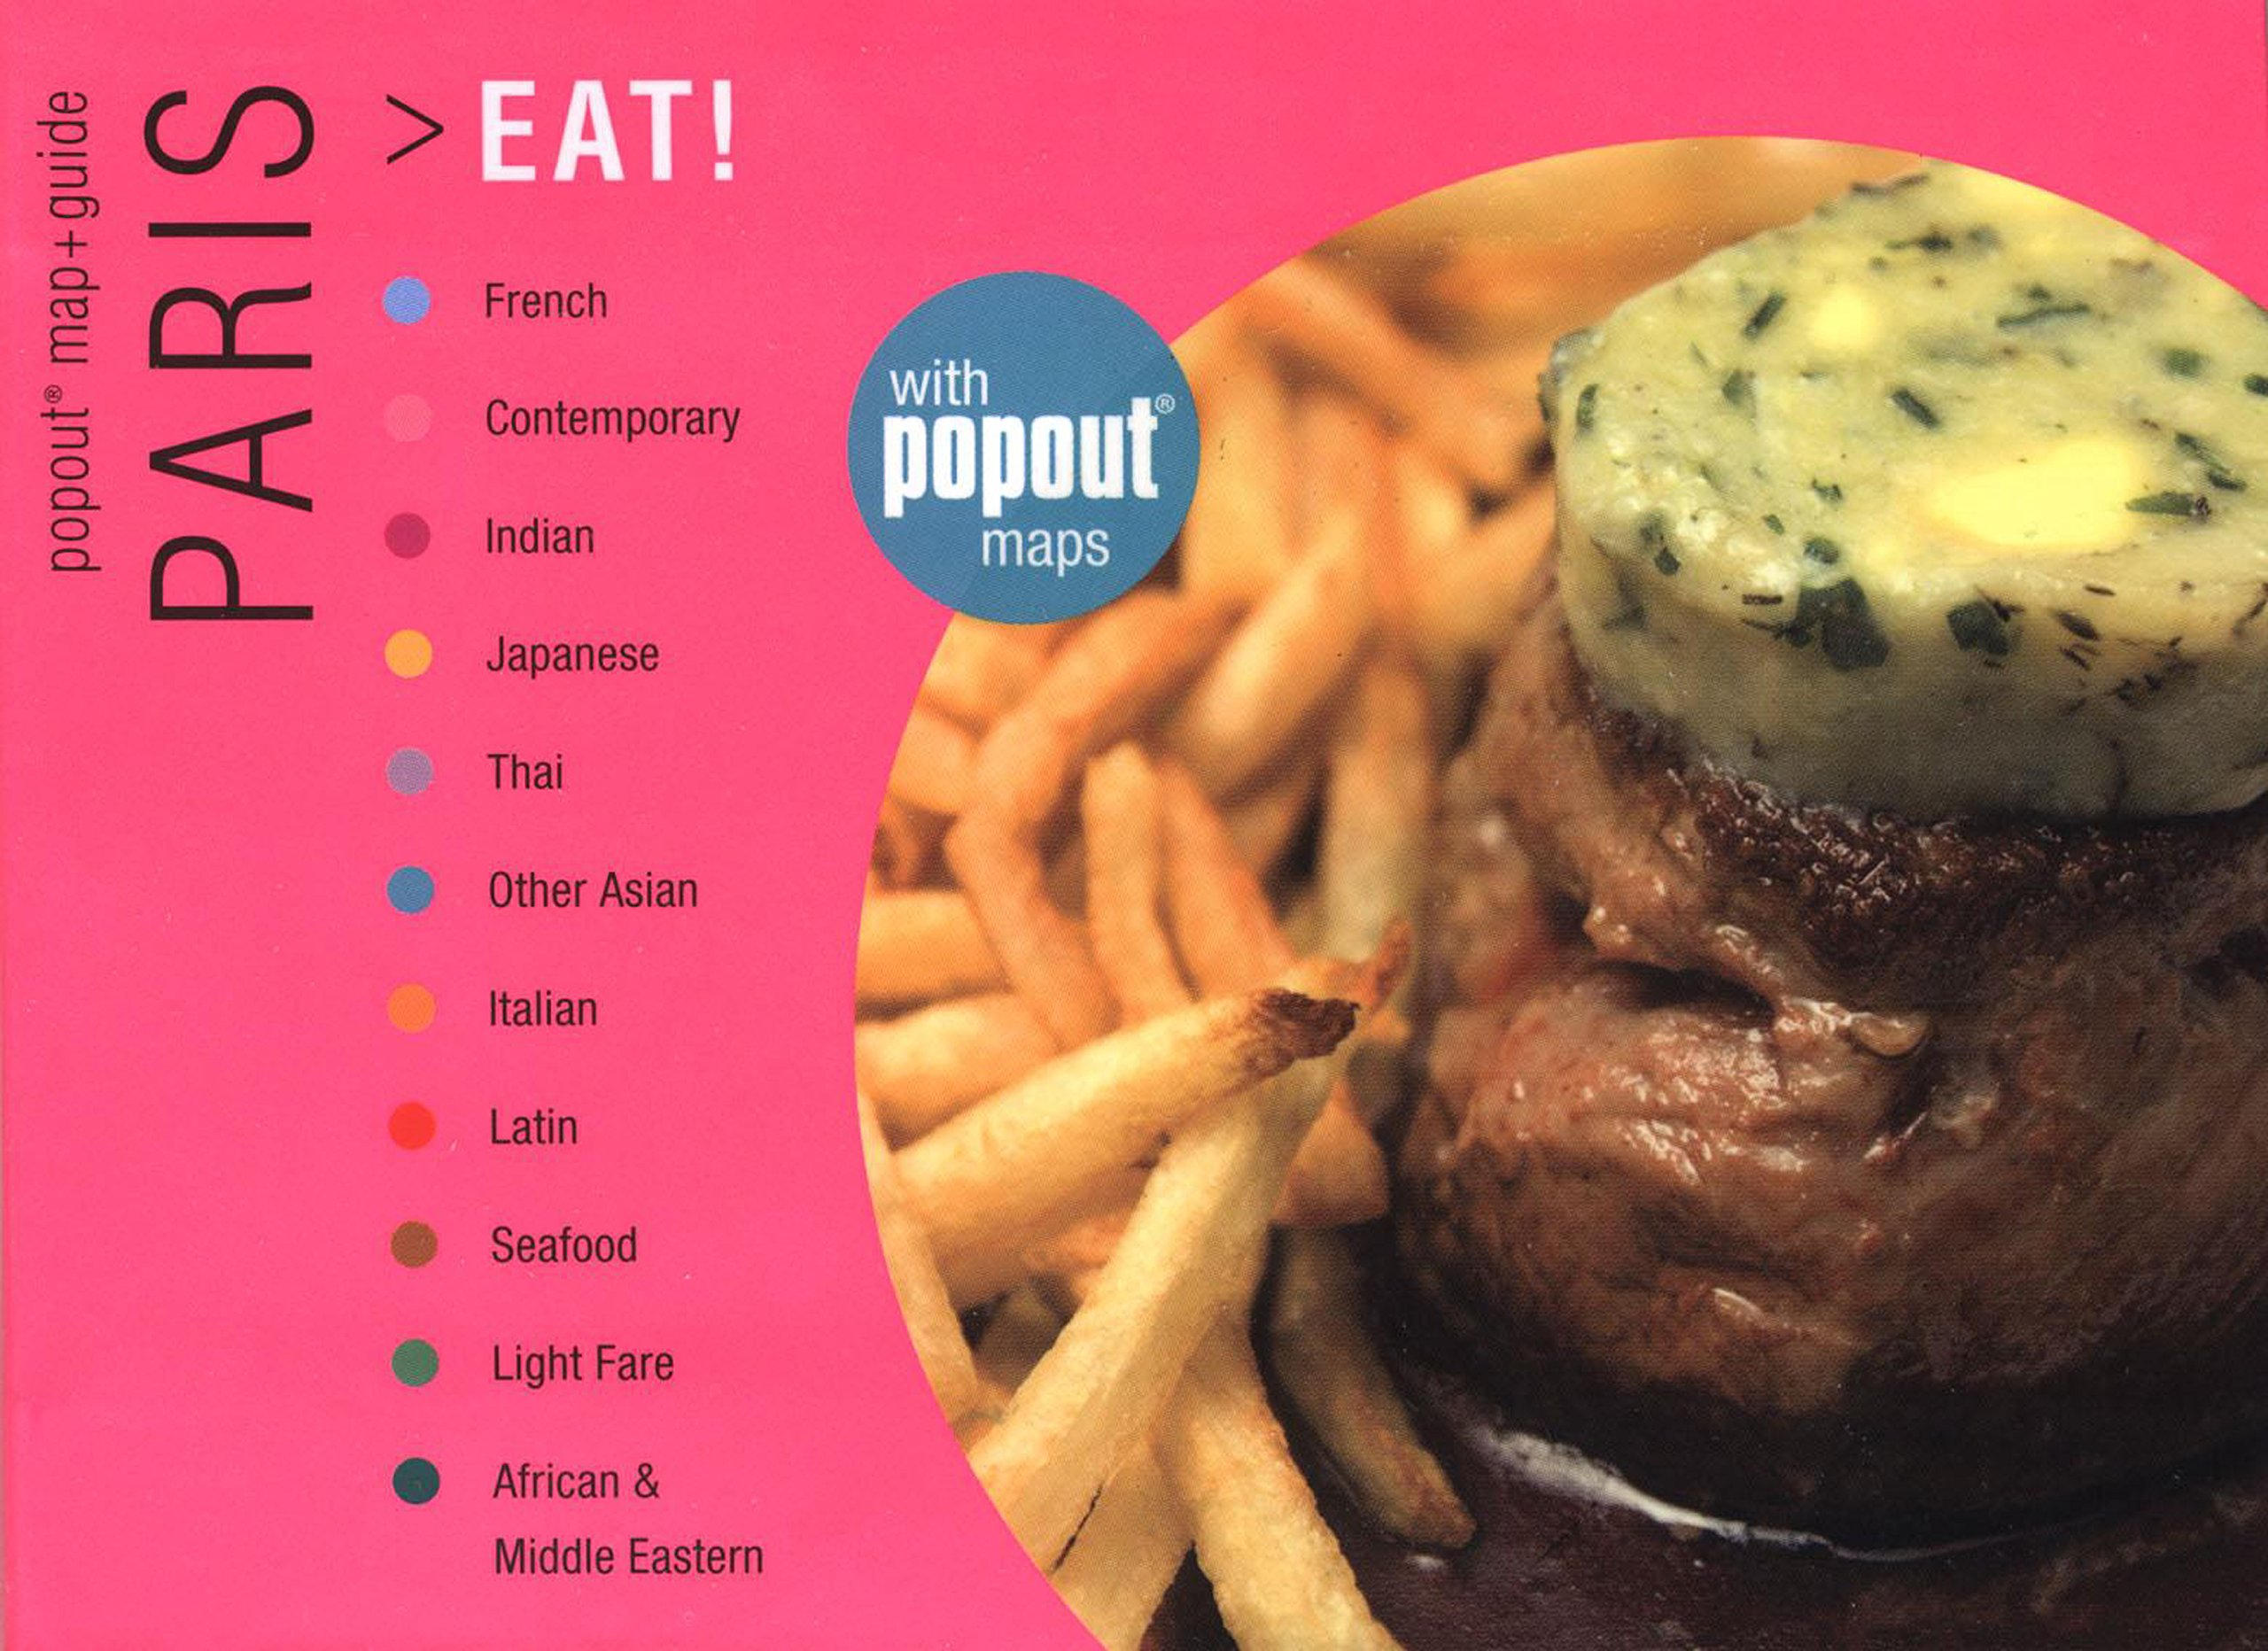 Download Paris Eat!: Great Meals Wherever You Are (Where to Eat Guides) pdf